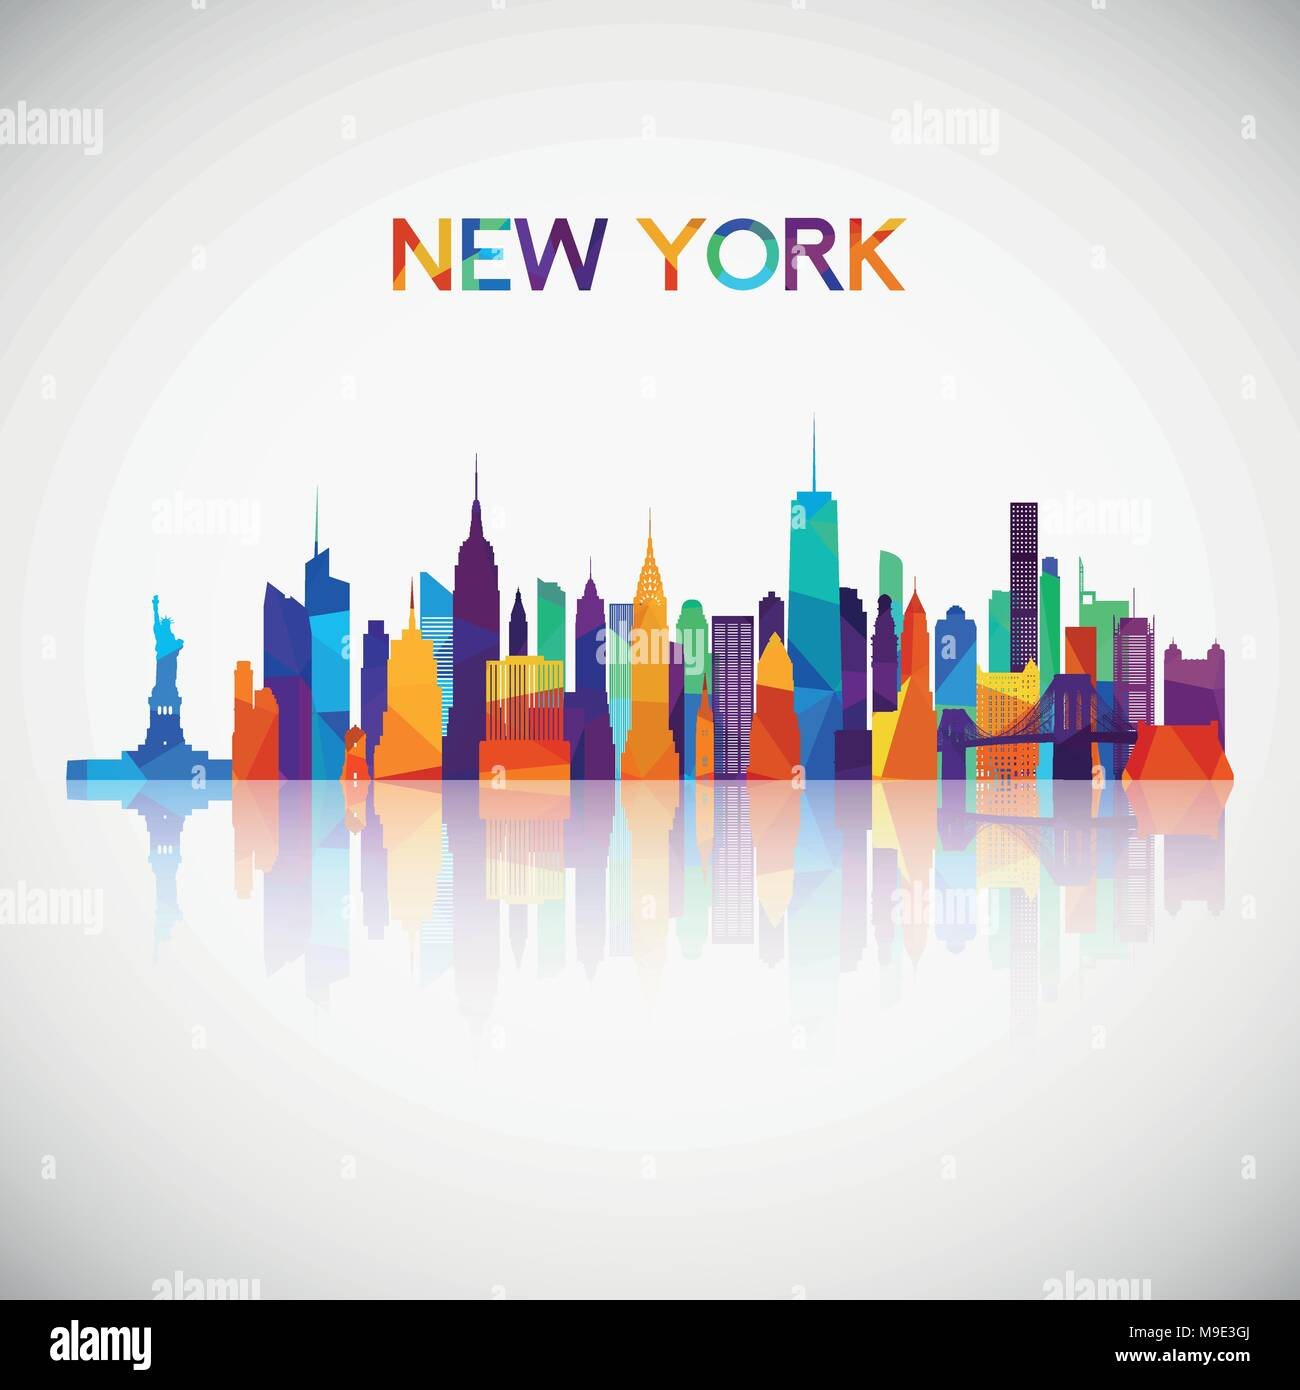 New York Skyline Silhouette In Colorful Geometric Style Symbol For